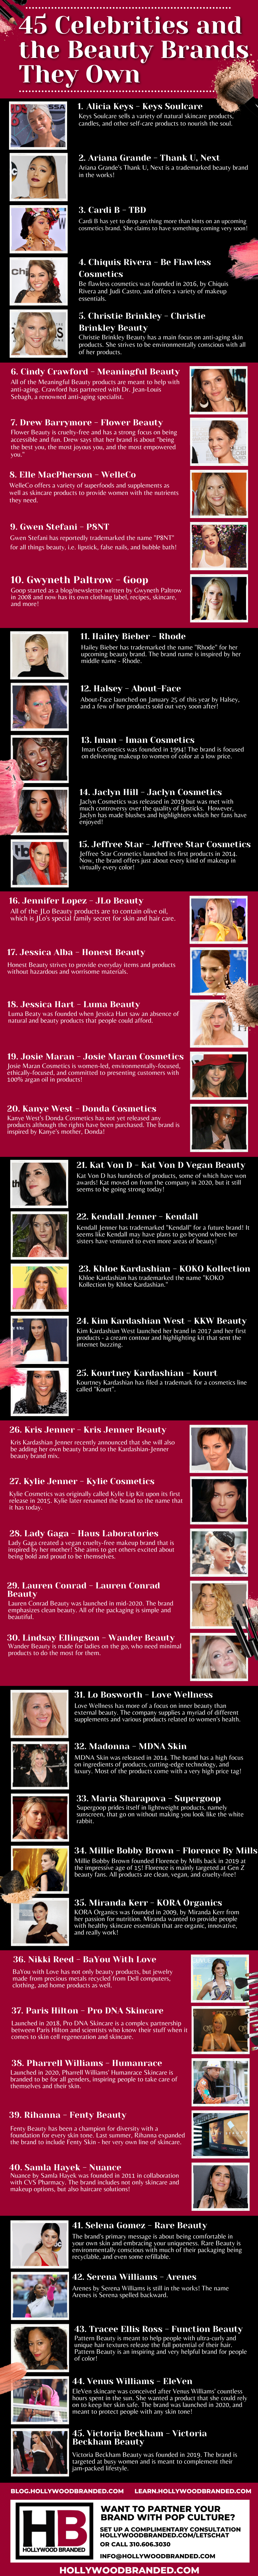 45 Celebrities and the Beauty Brands They Own Infographic